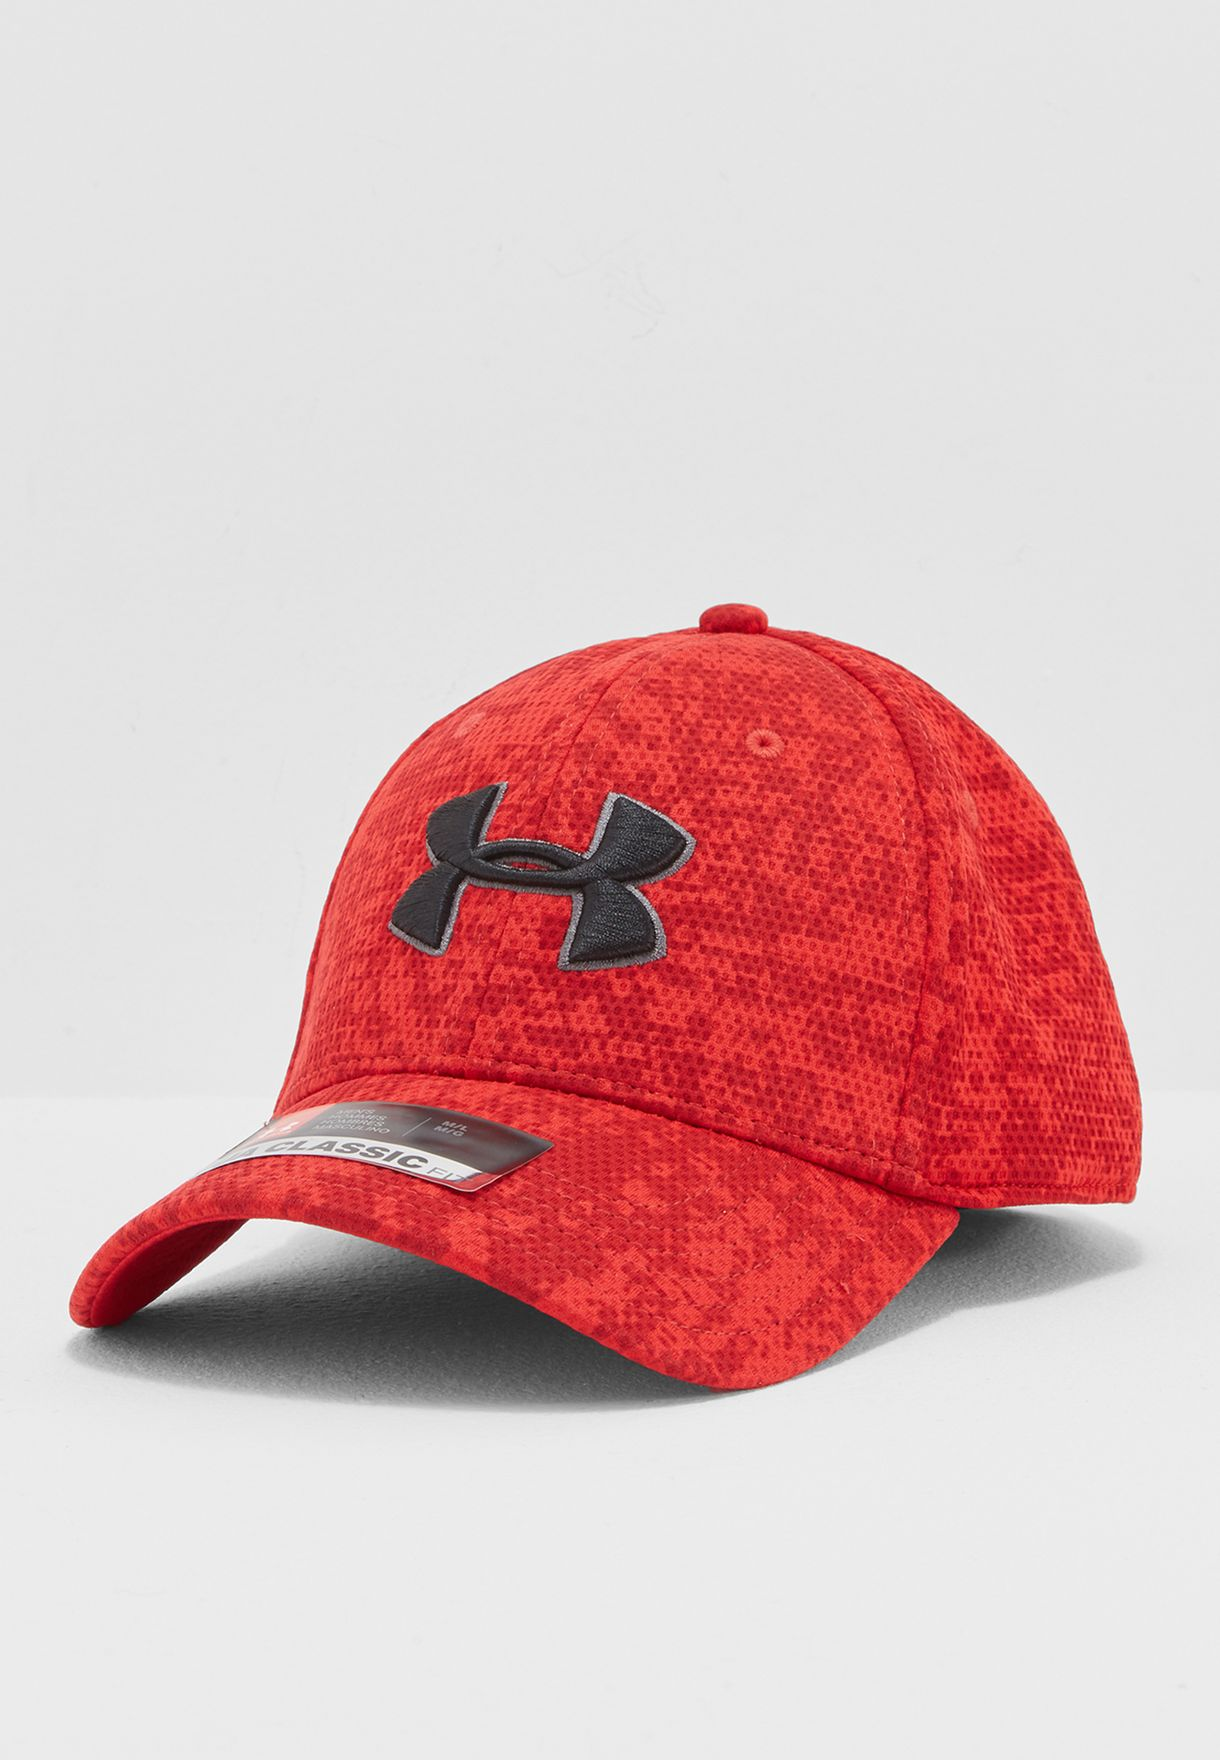 NEW FAST FREE SHIPPING UNDER ARMOUR MENS BLITZING CAP RED SIZE MEDIUM//LARGE